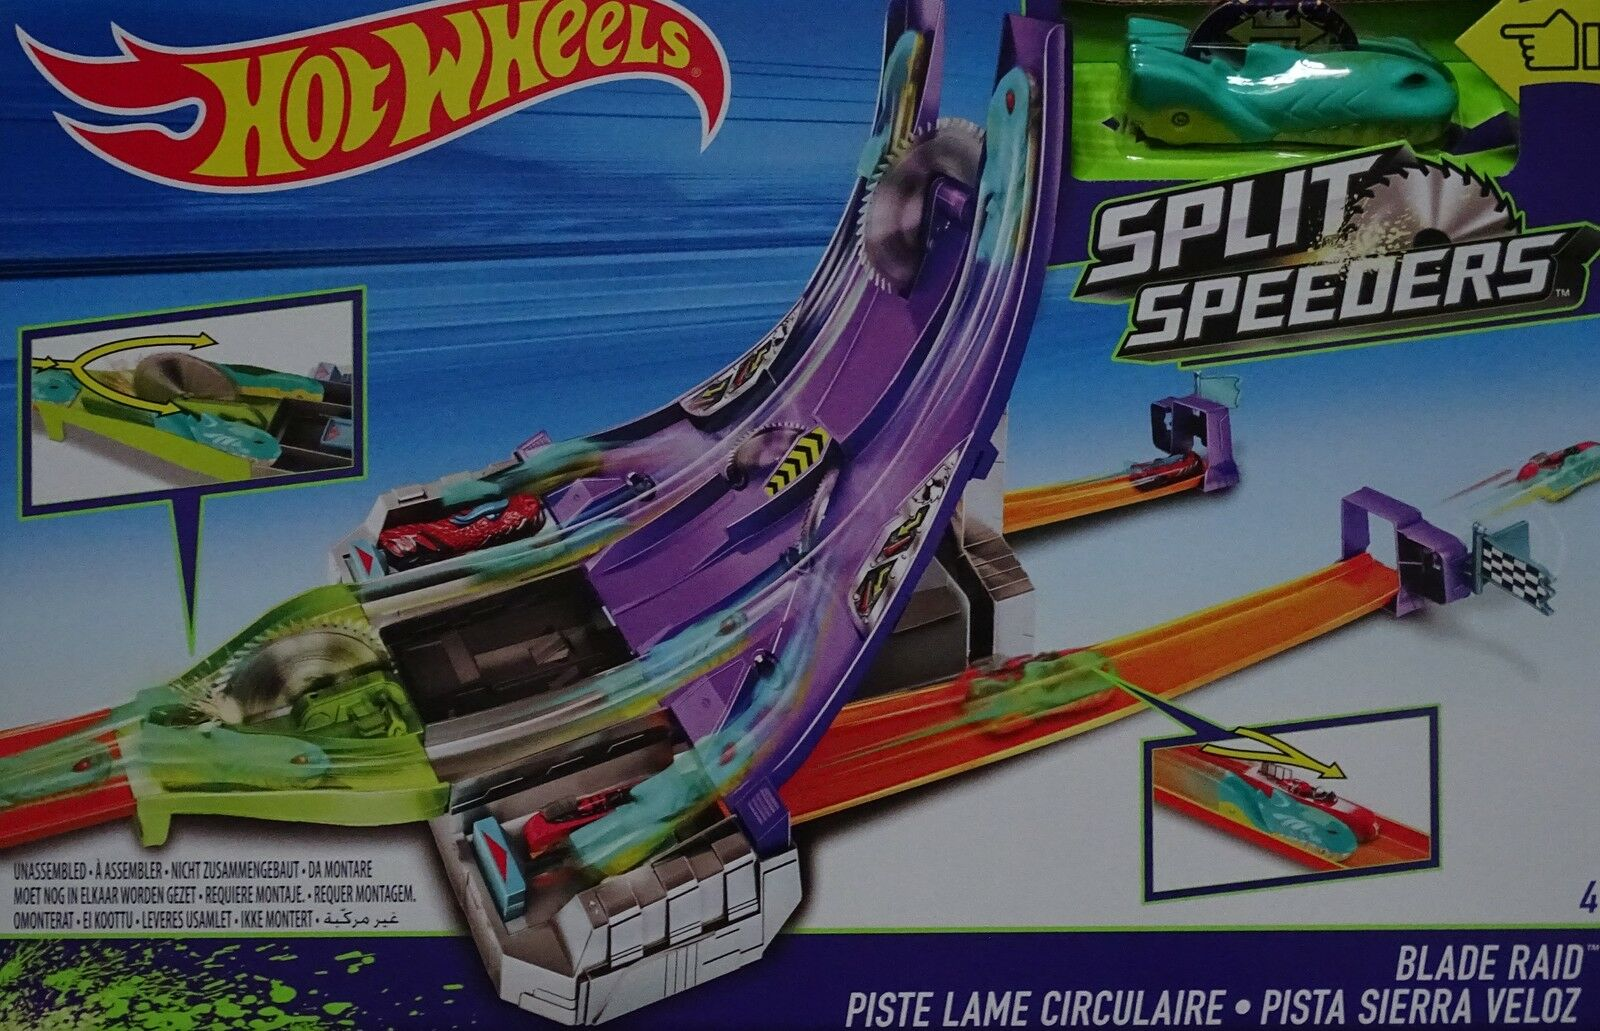 MATTEL® DHY27 HOT WHEELS® Split Speeders™ Blade Raid™ mit 1 Auto